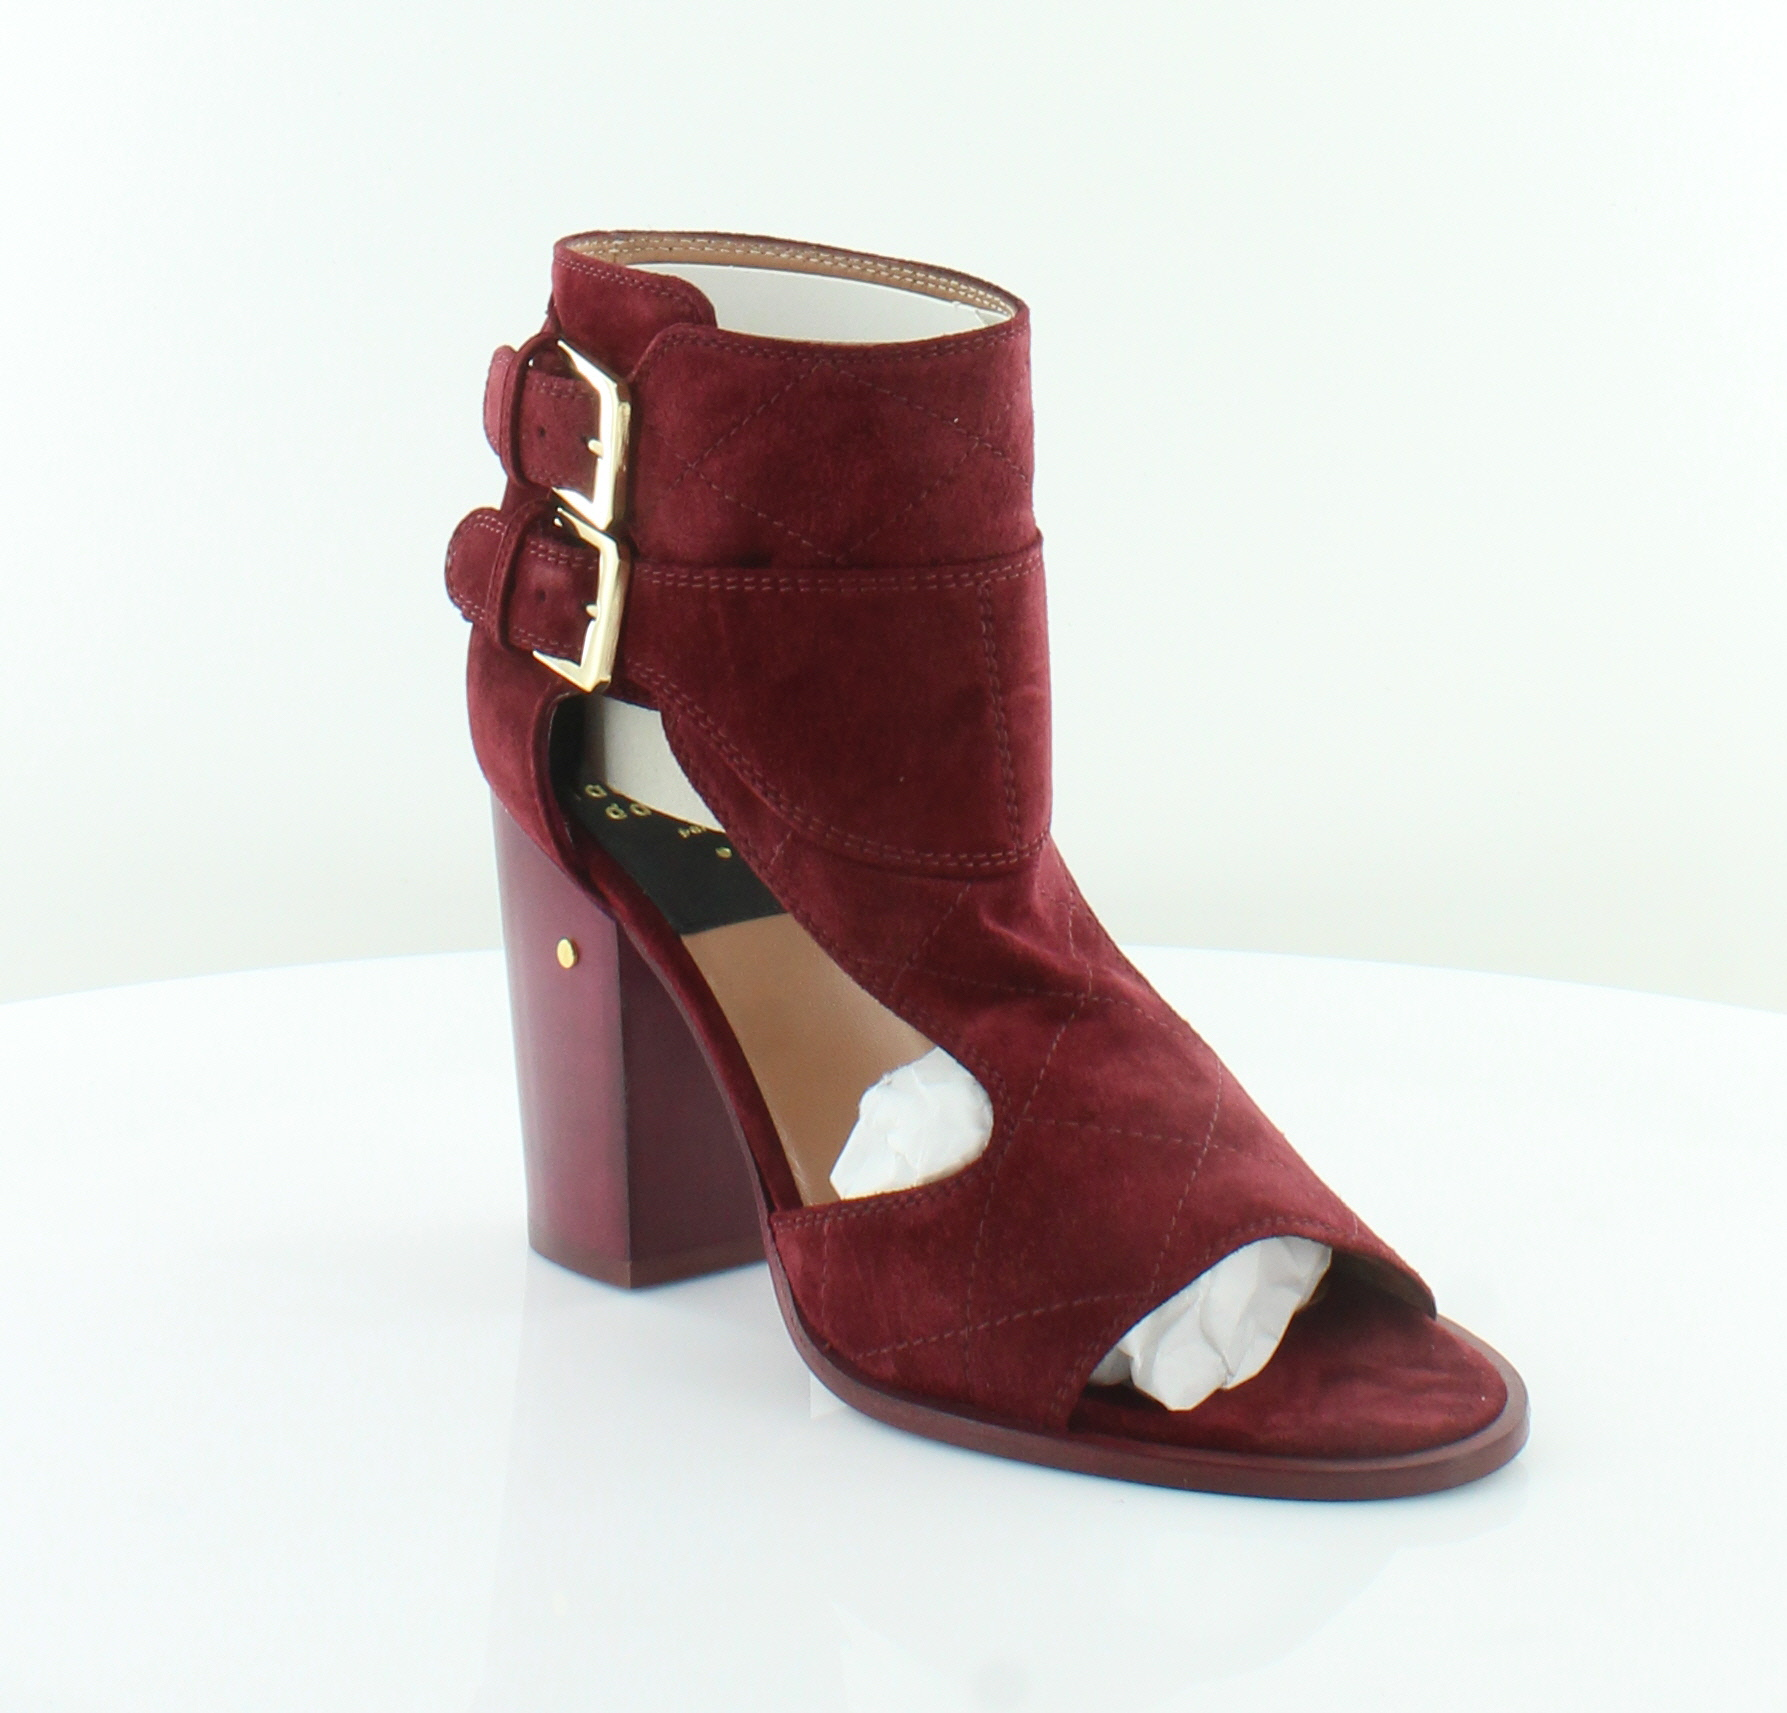 Laurence dacade Deric Red Womens shoes Size 7 M Heels MSRP  795